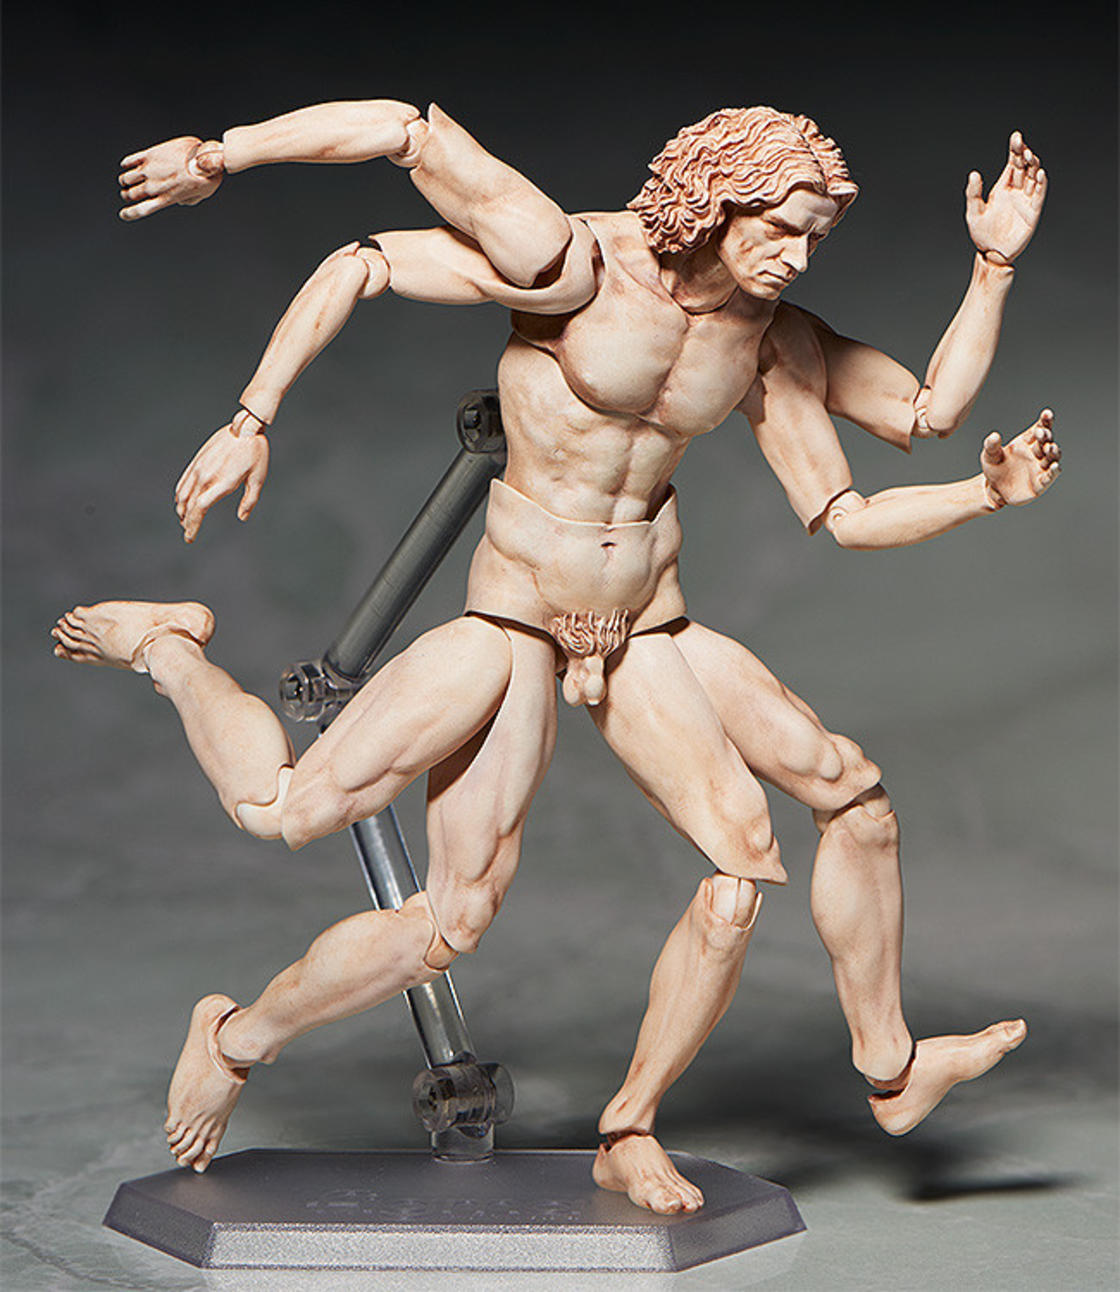 Vitruvian-Man-Action-Figure-10.jpg